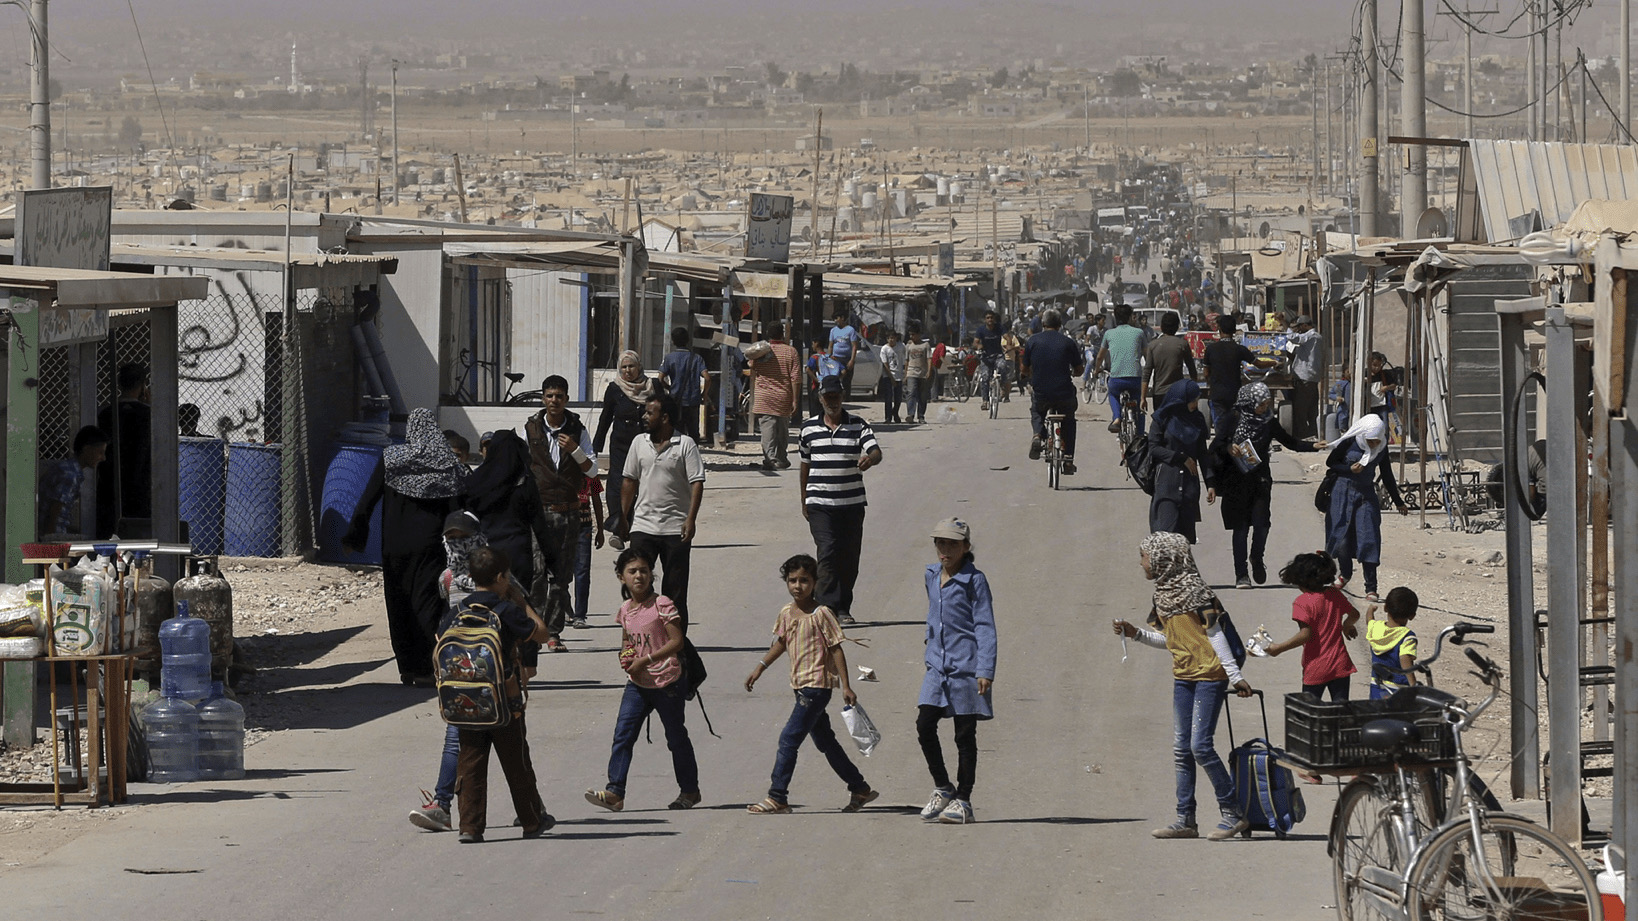 Zaatari camp, hell on earth for 80,000 refugees